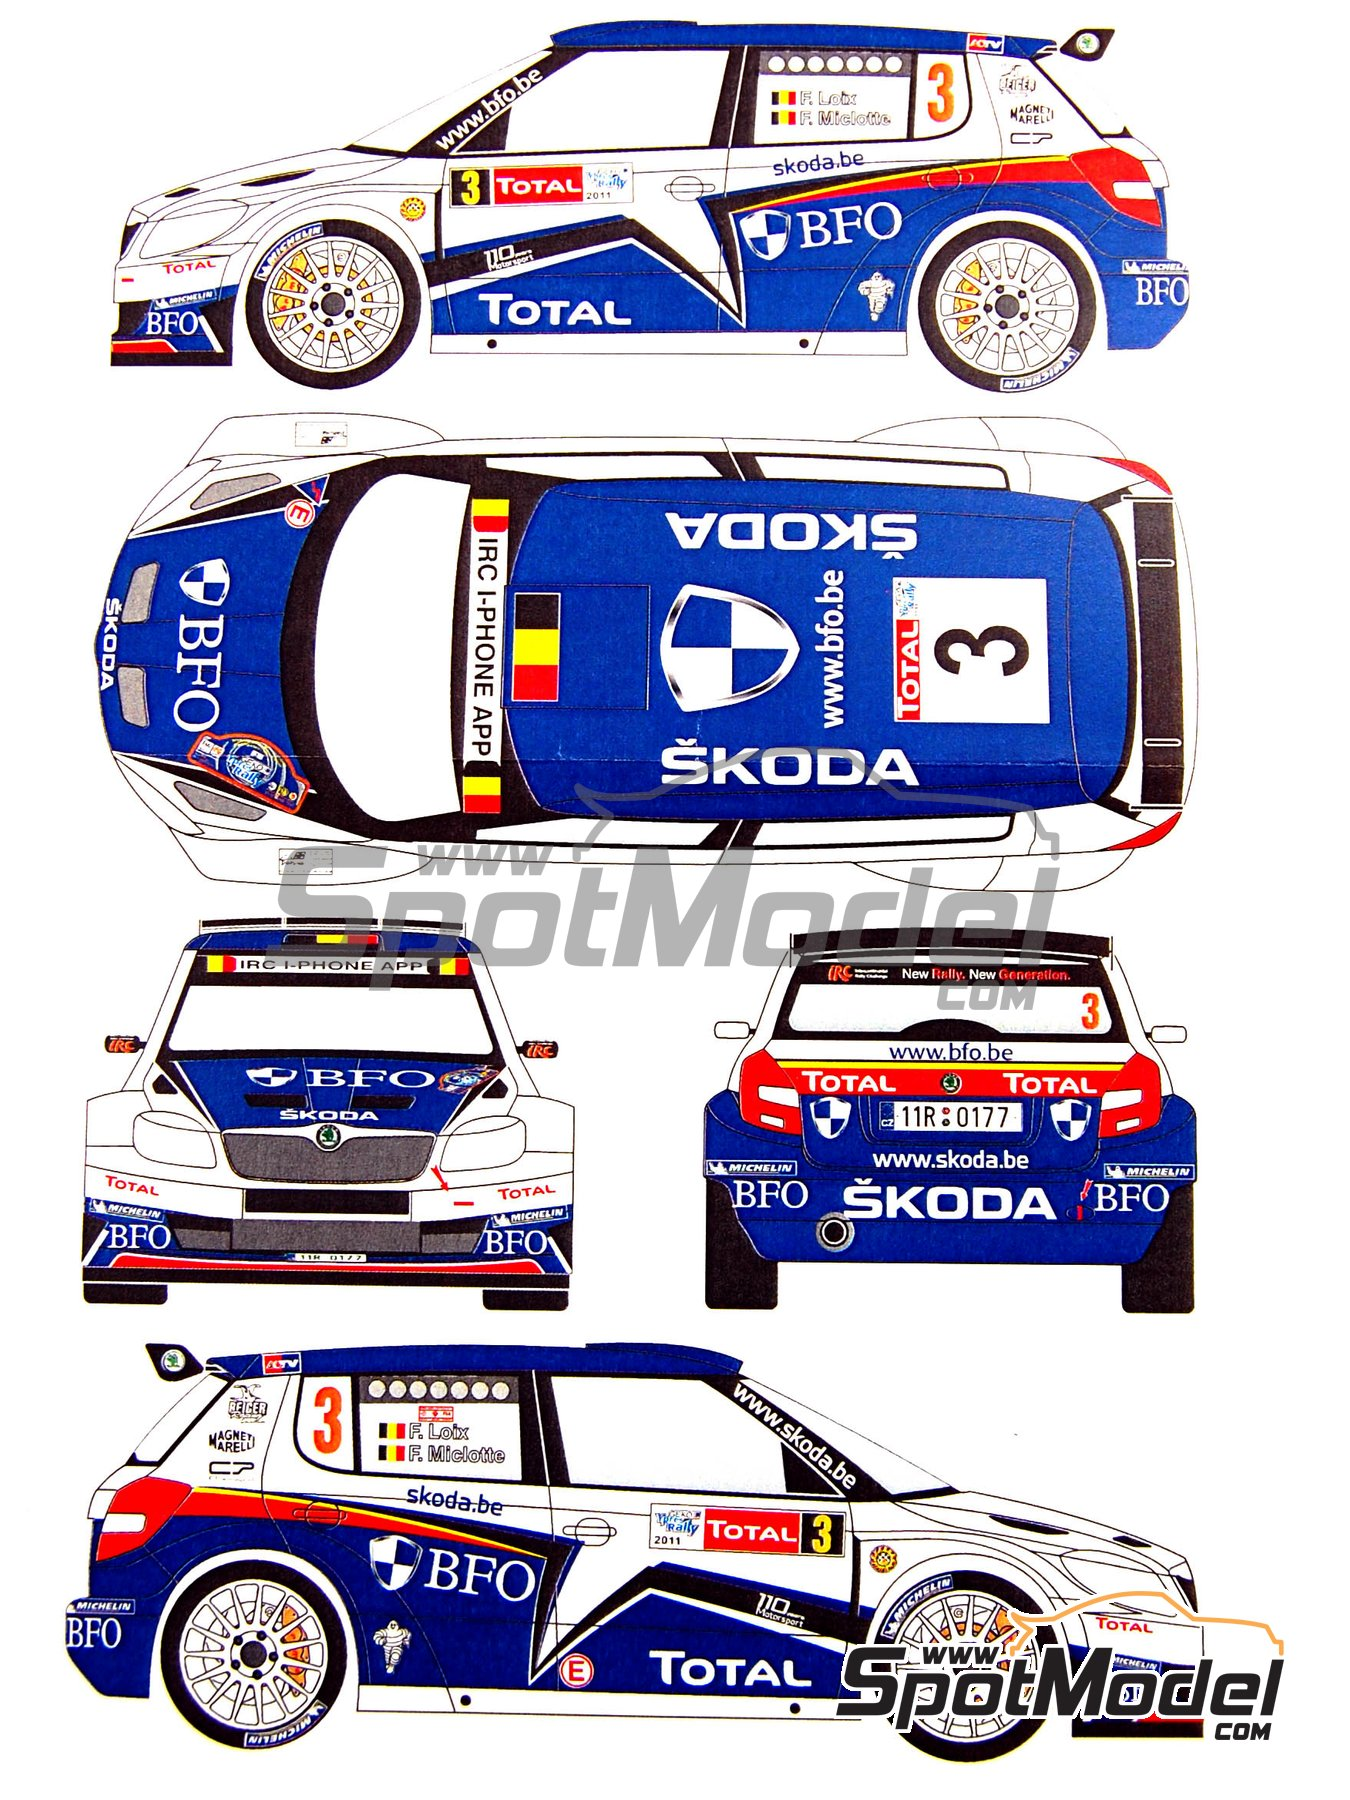 Skoda Fabia S2000 Evo BFO - Ypres Rally 2011 | Marking / livery in 1/24 scale manufactured by Renaissance Models (ref. TK24-380) image